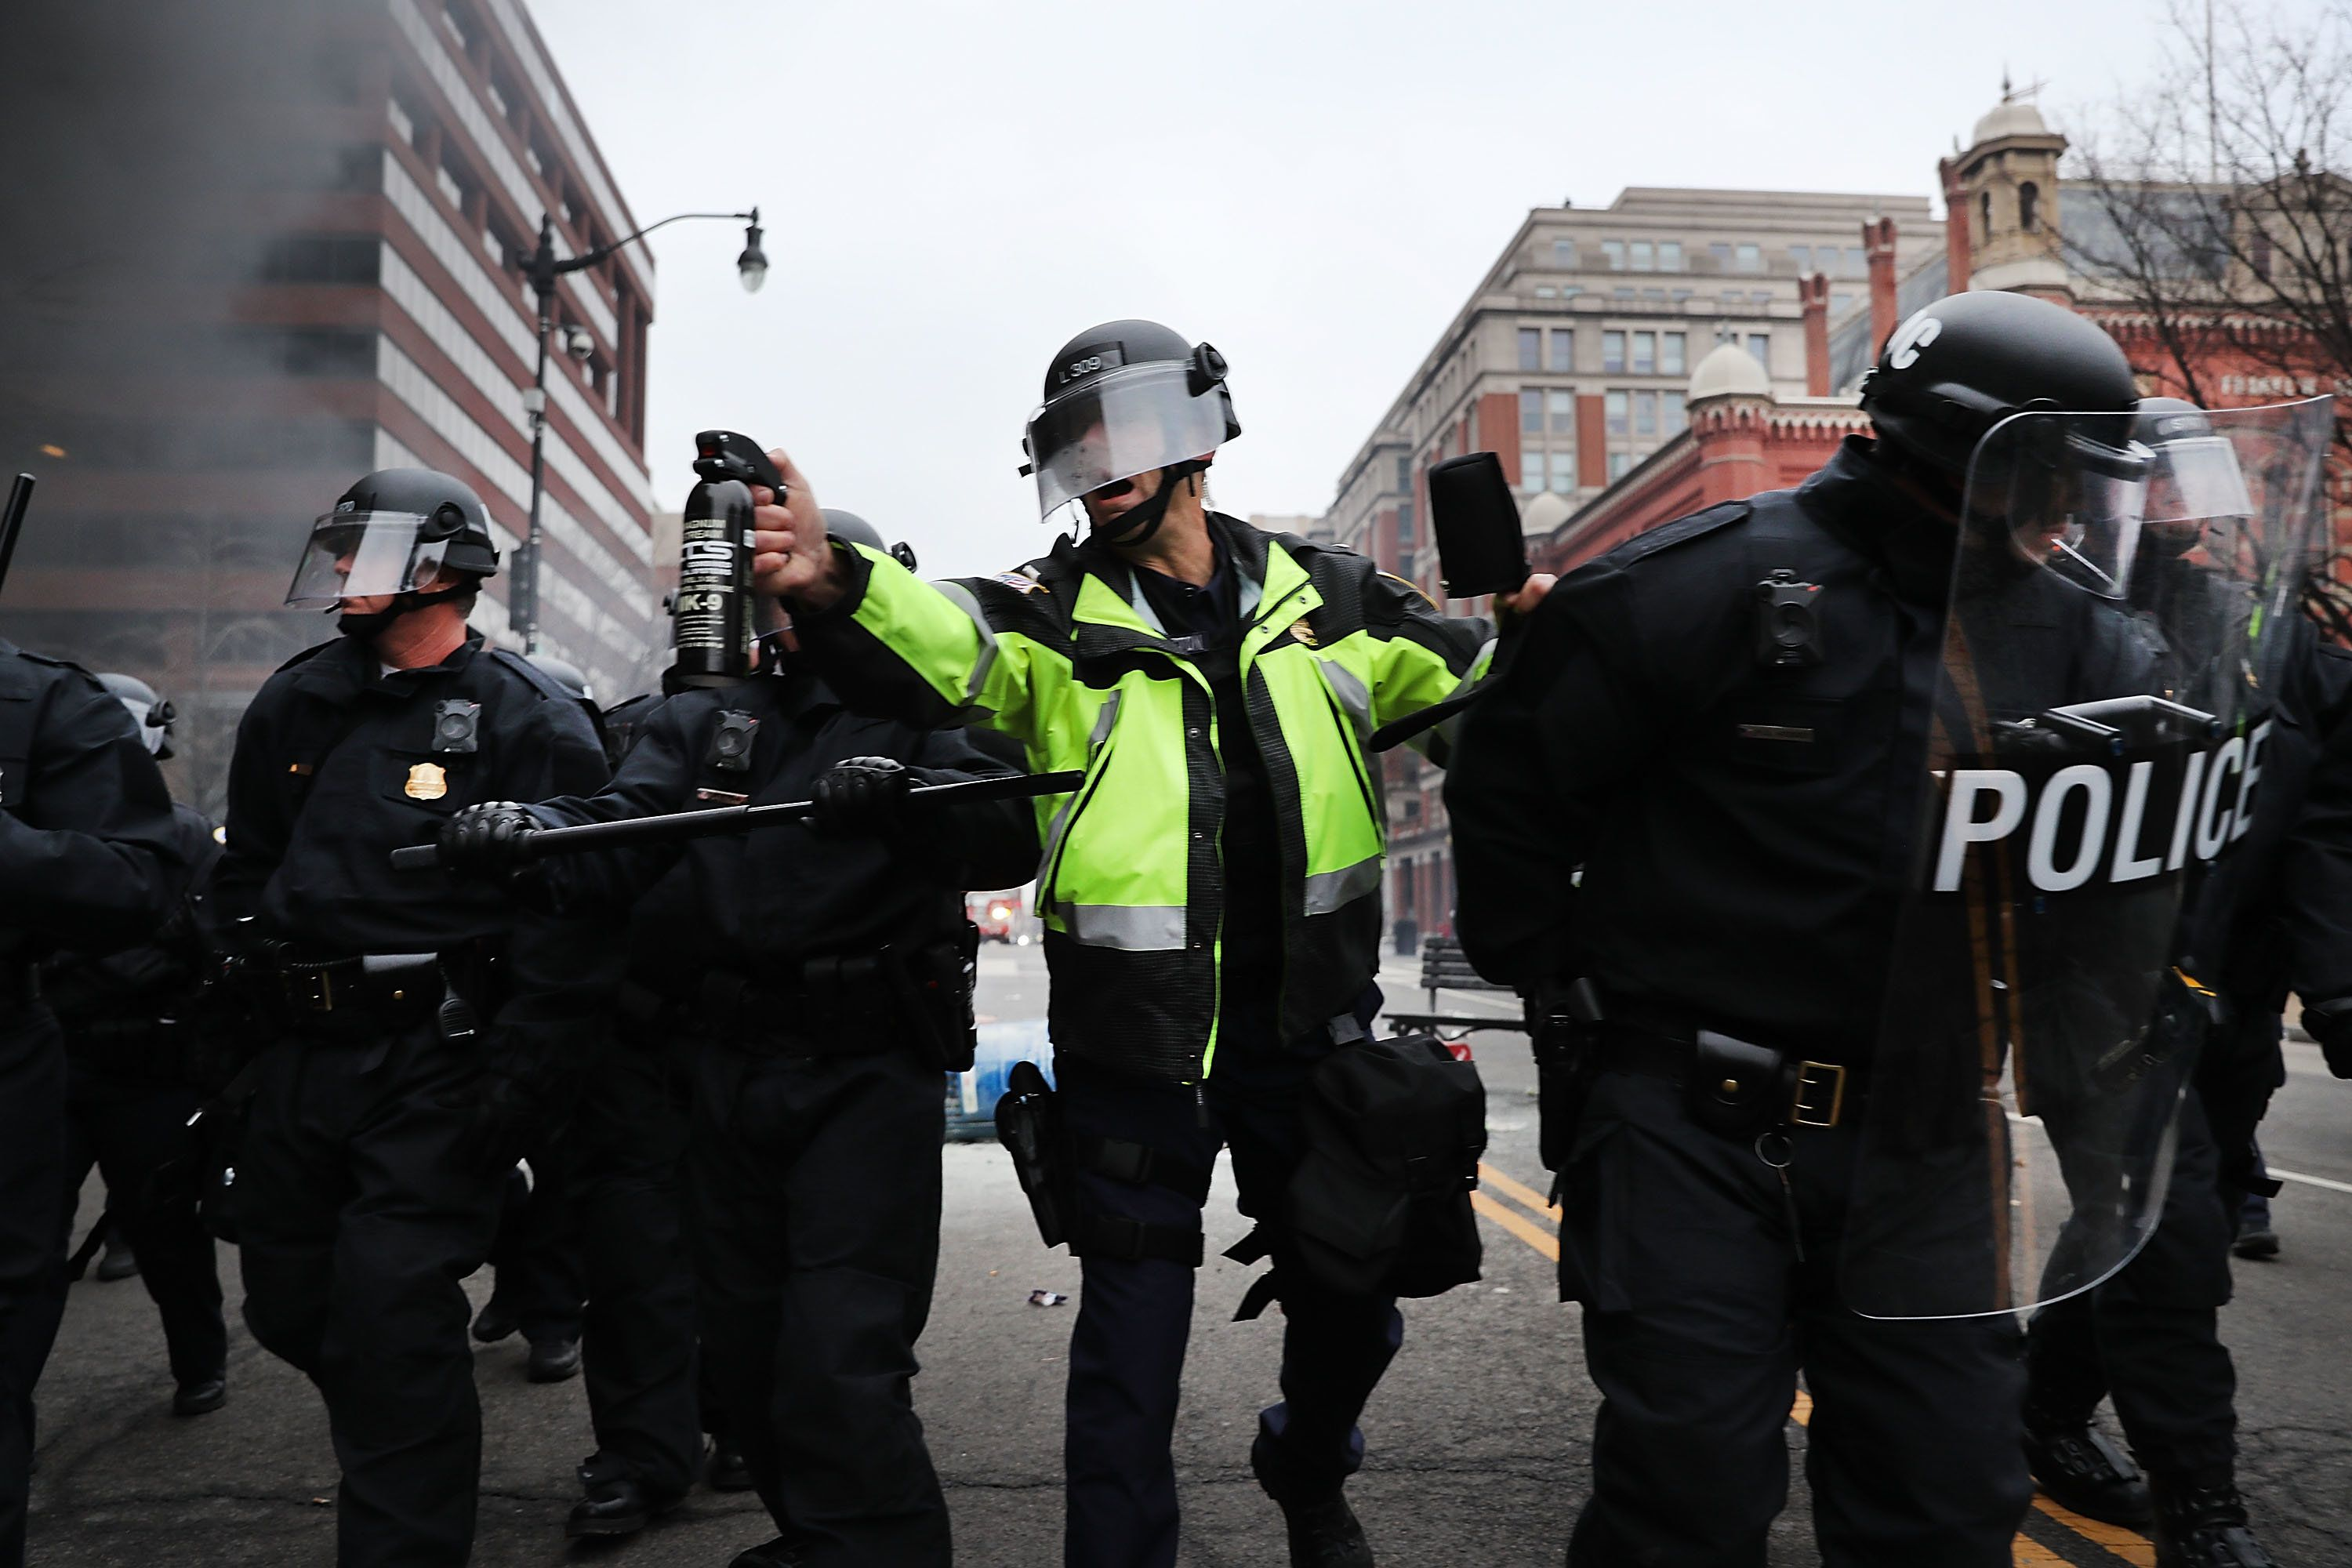 WASHINGTON, DC - JANUARY 20:  A police officer holds a tear gas cannister as police and demonstrators clash in downtown Washington after a limo was set on fire following the inauguration of President Donald Trump on January 20, 2017 in Washington, DC. Washington and the entire world have watched the transfer of the United States presidency from Barack Obama to Donald Trump, the 45th president.  (Photo by Spencer Platt/Getty Images)